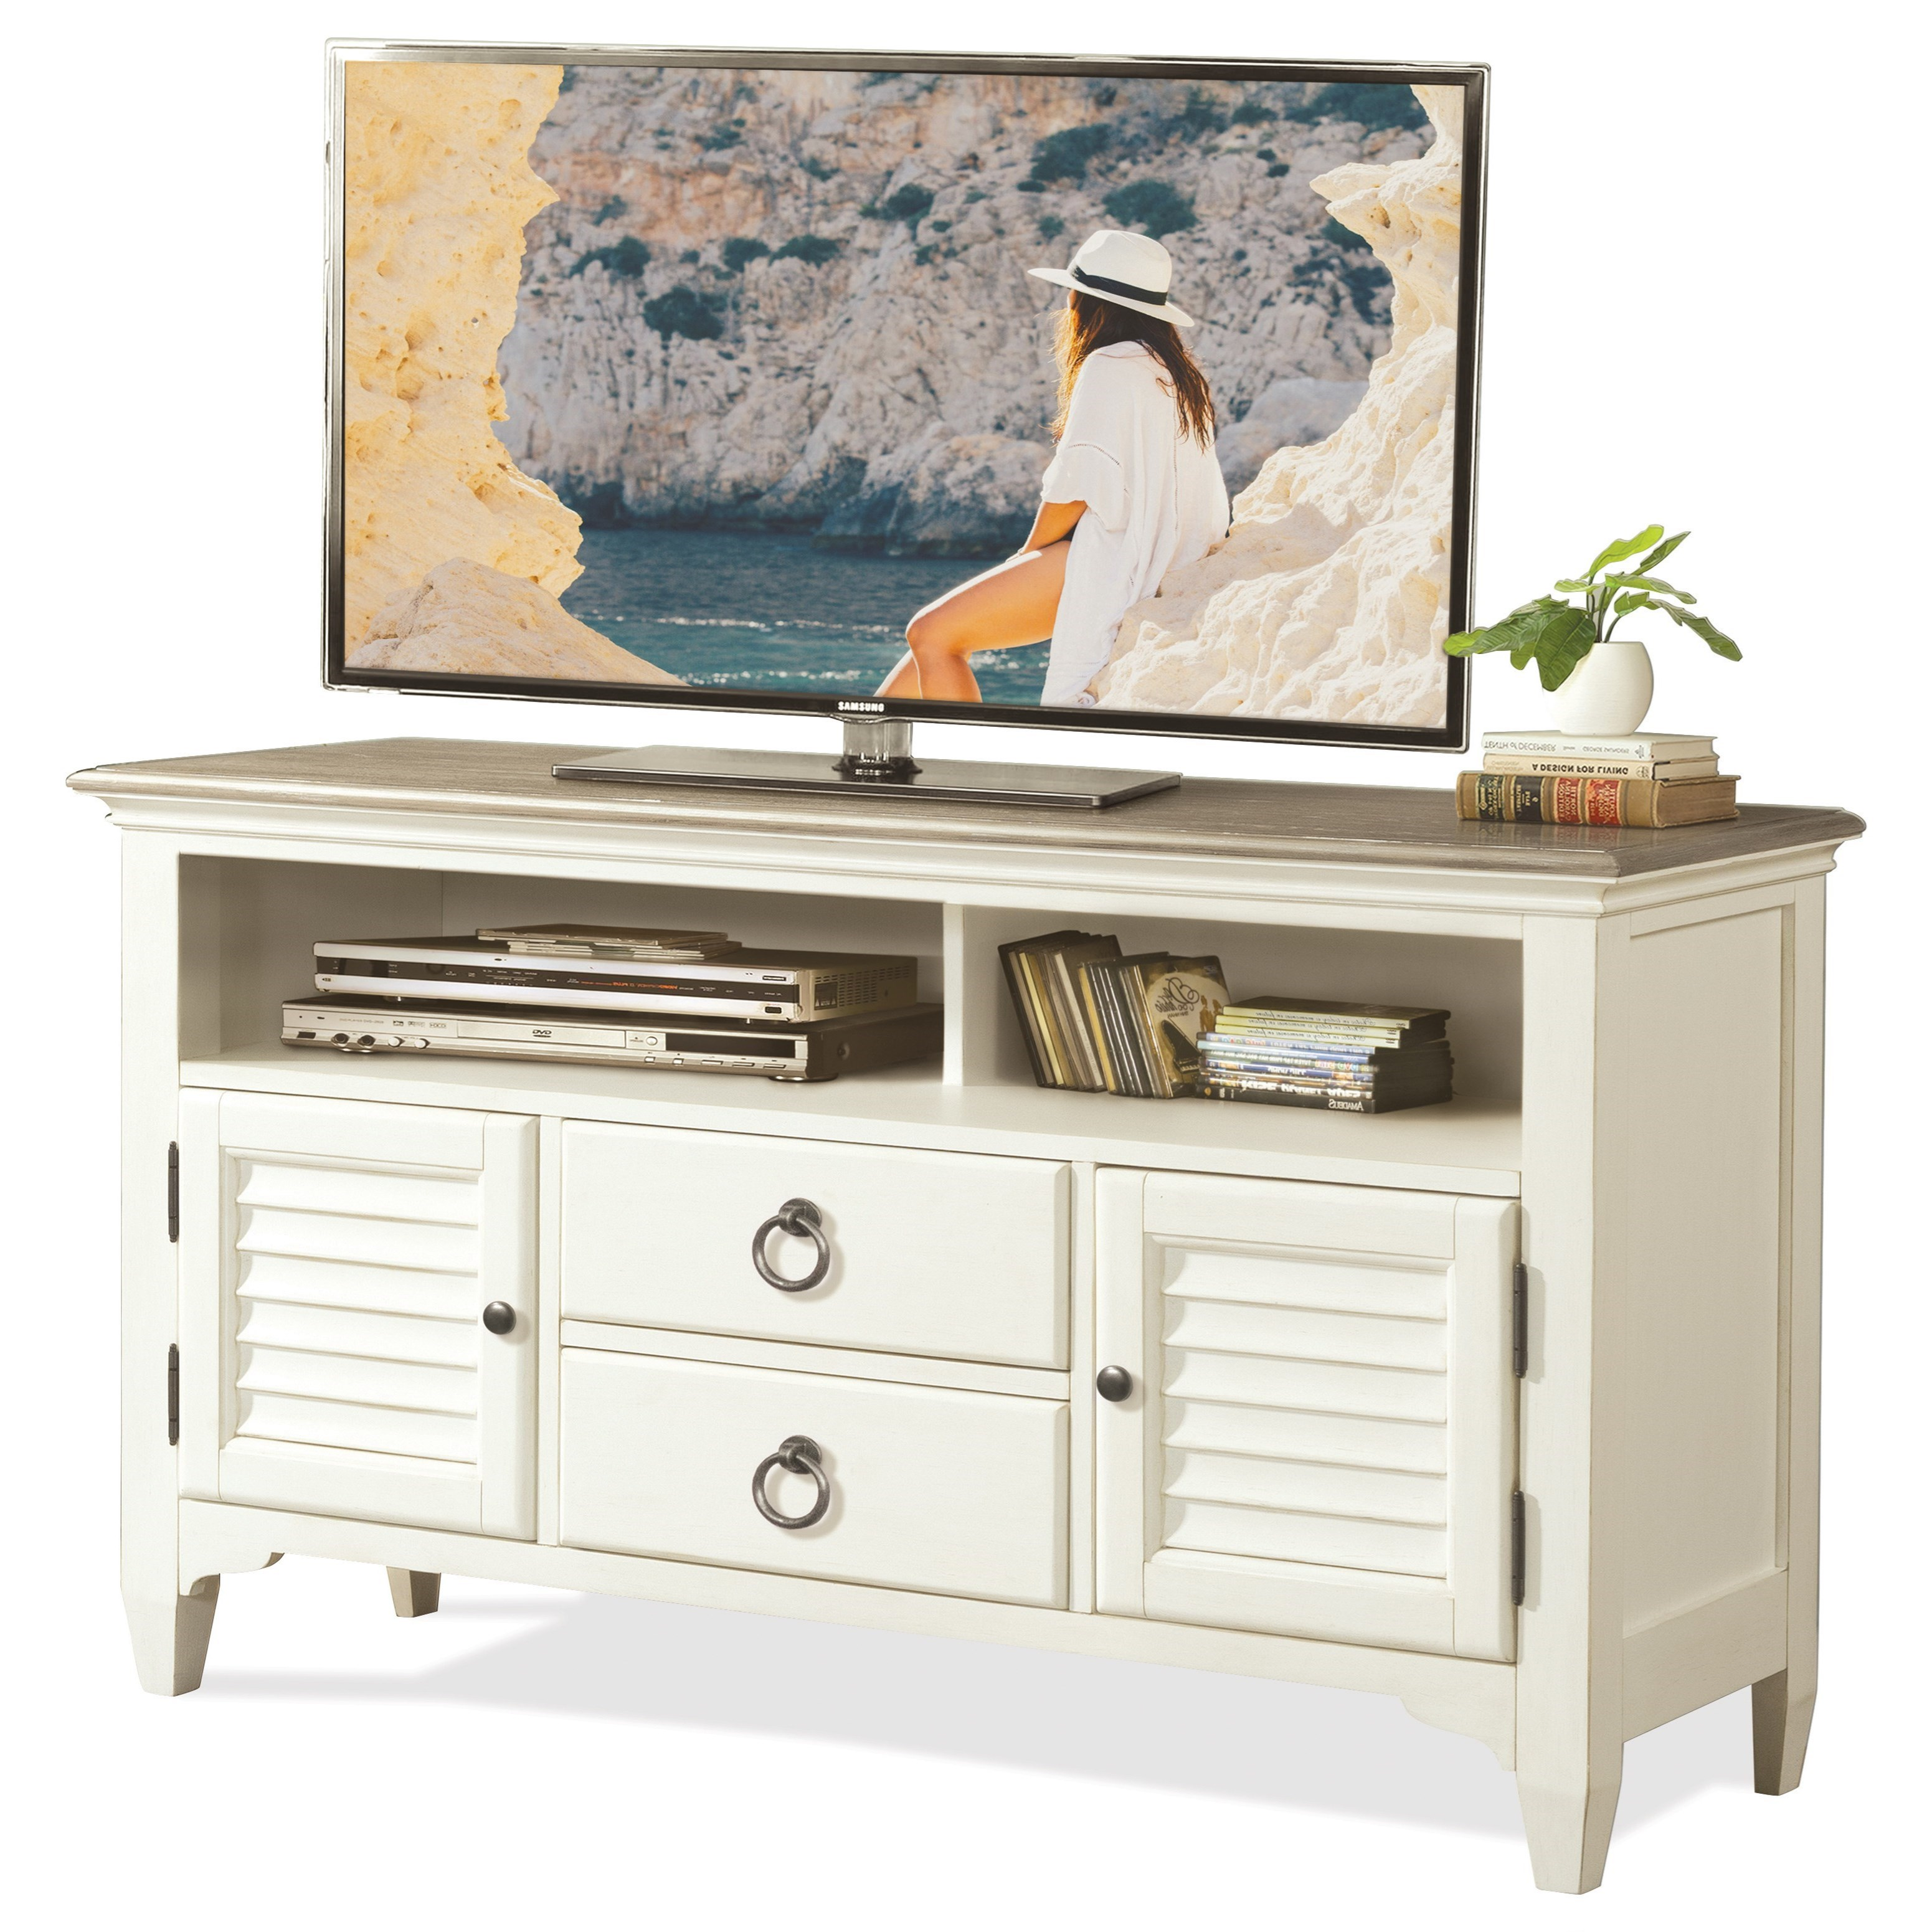 Myra 54-Inch TV Console by Riverside Furniture at Johnny Janosik